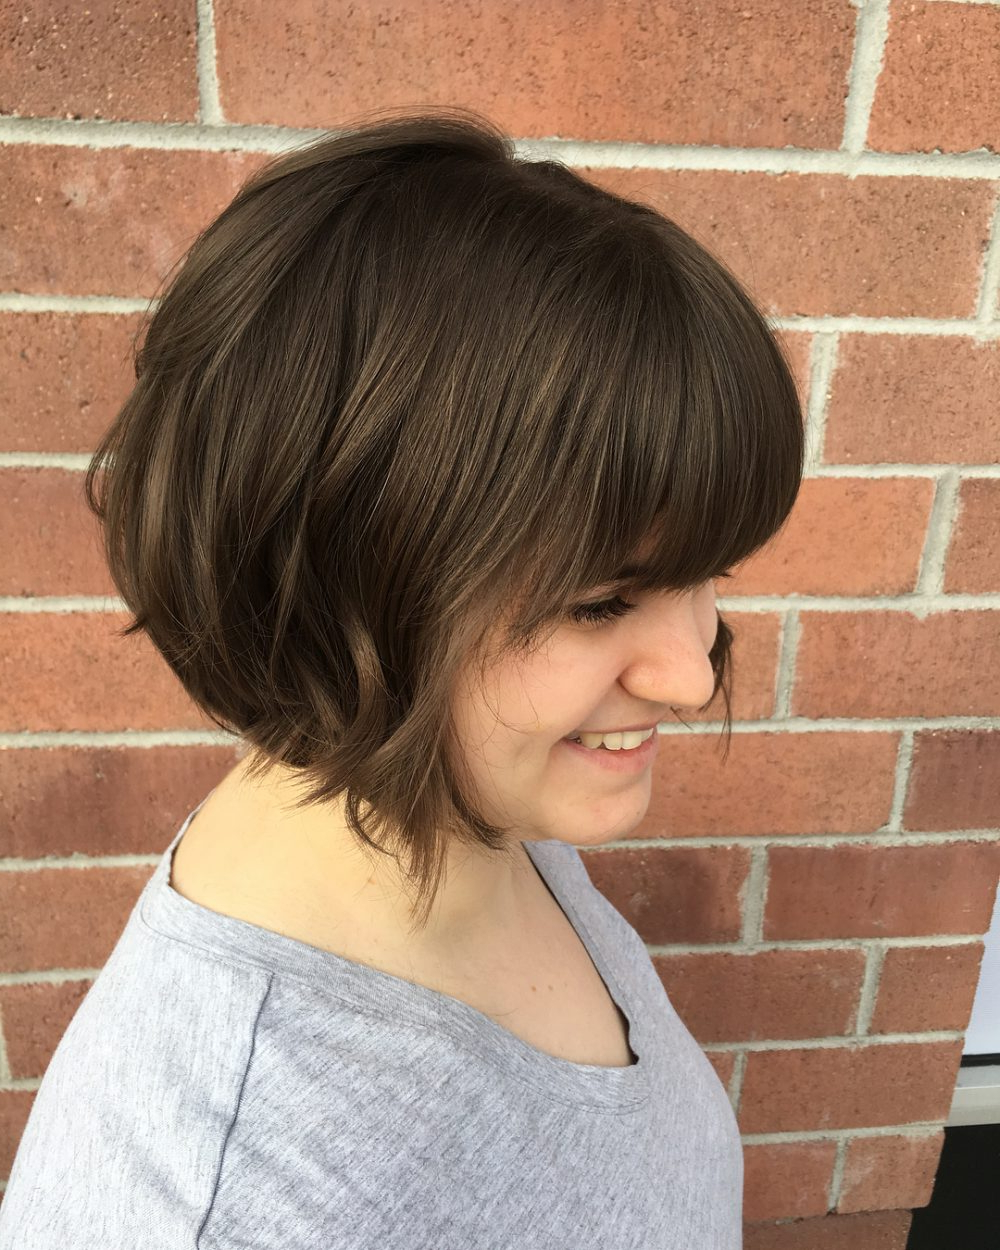 34 Greatest Short Haircuts And Hairstyles For Thick Hair For 2018 Intended For Short To Medium Hairstyles For Thick Hair (View 6 of 25)